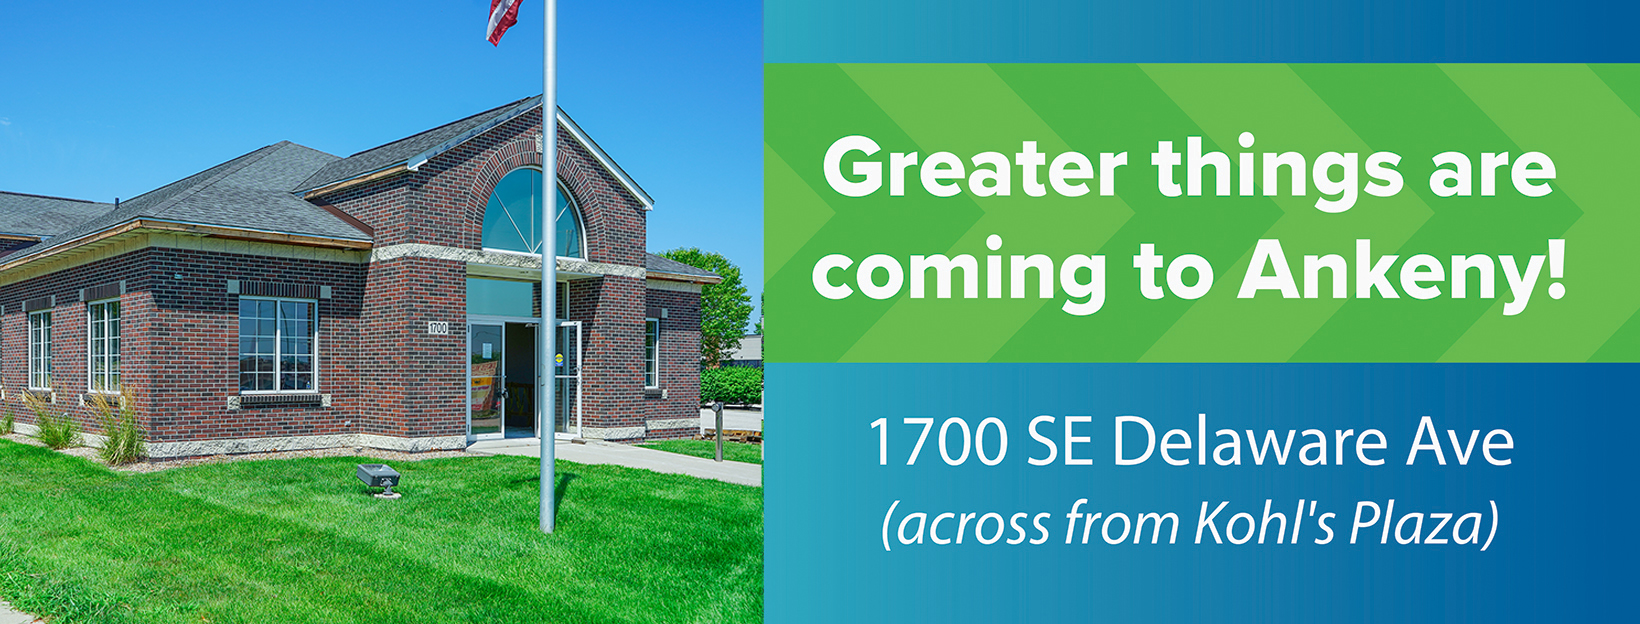 Greater things are coming to Ankeny